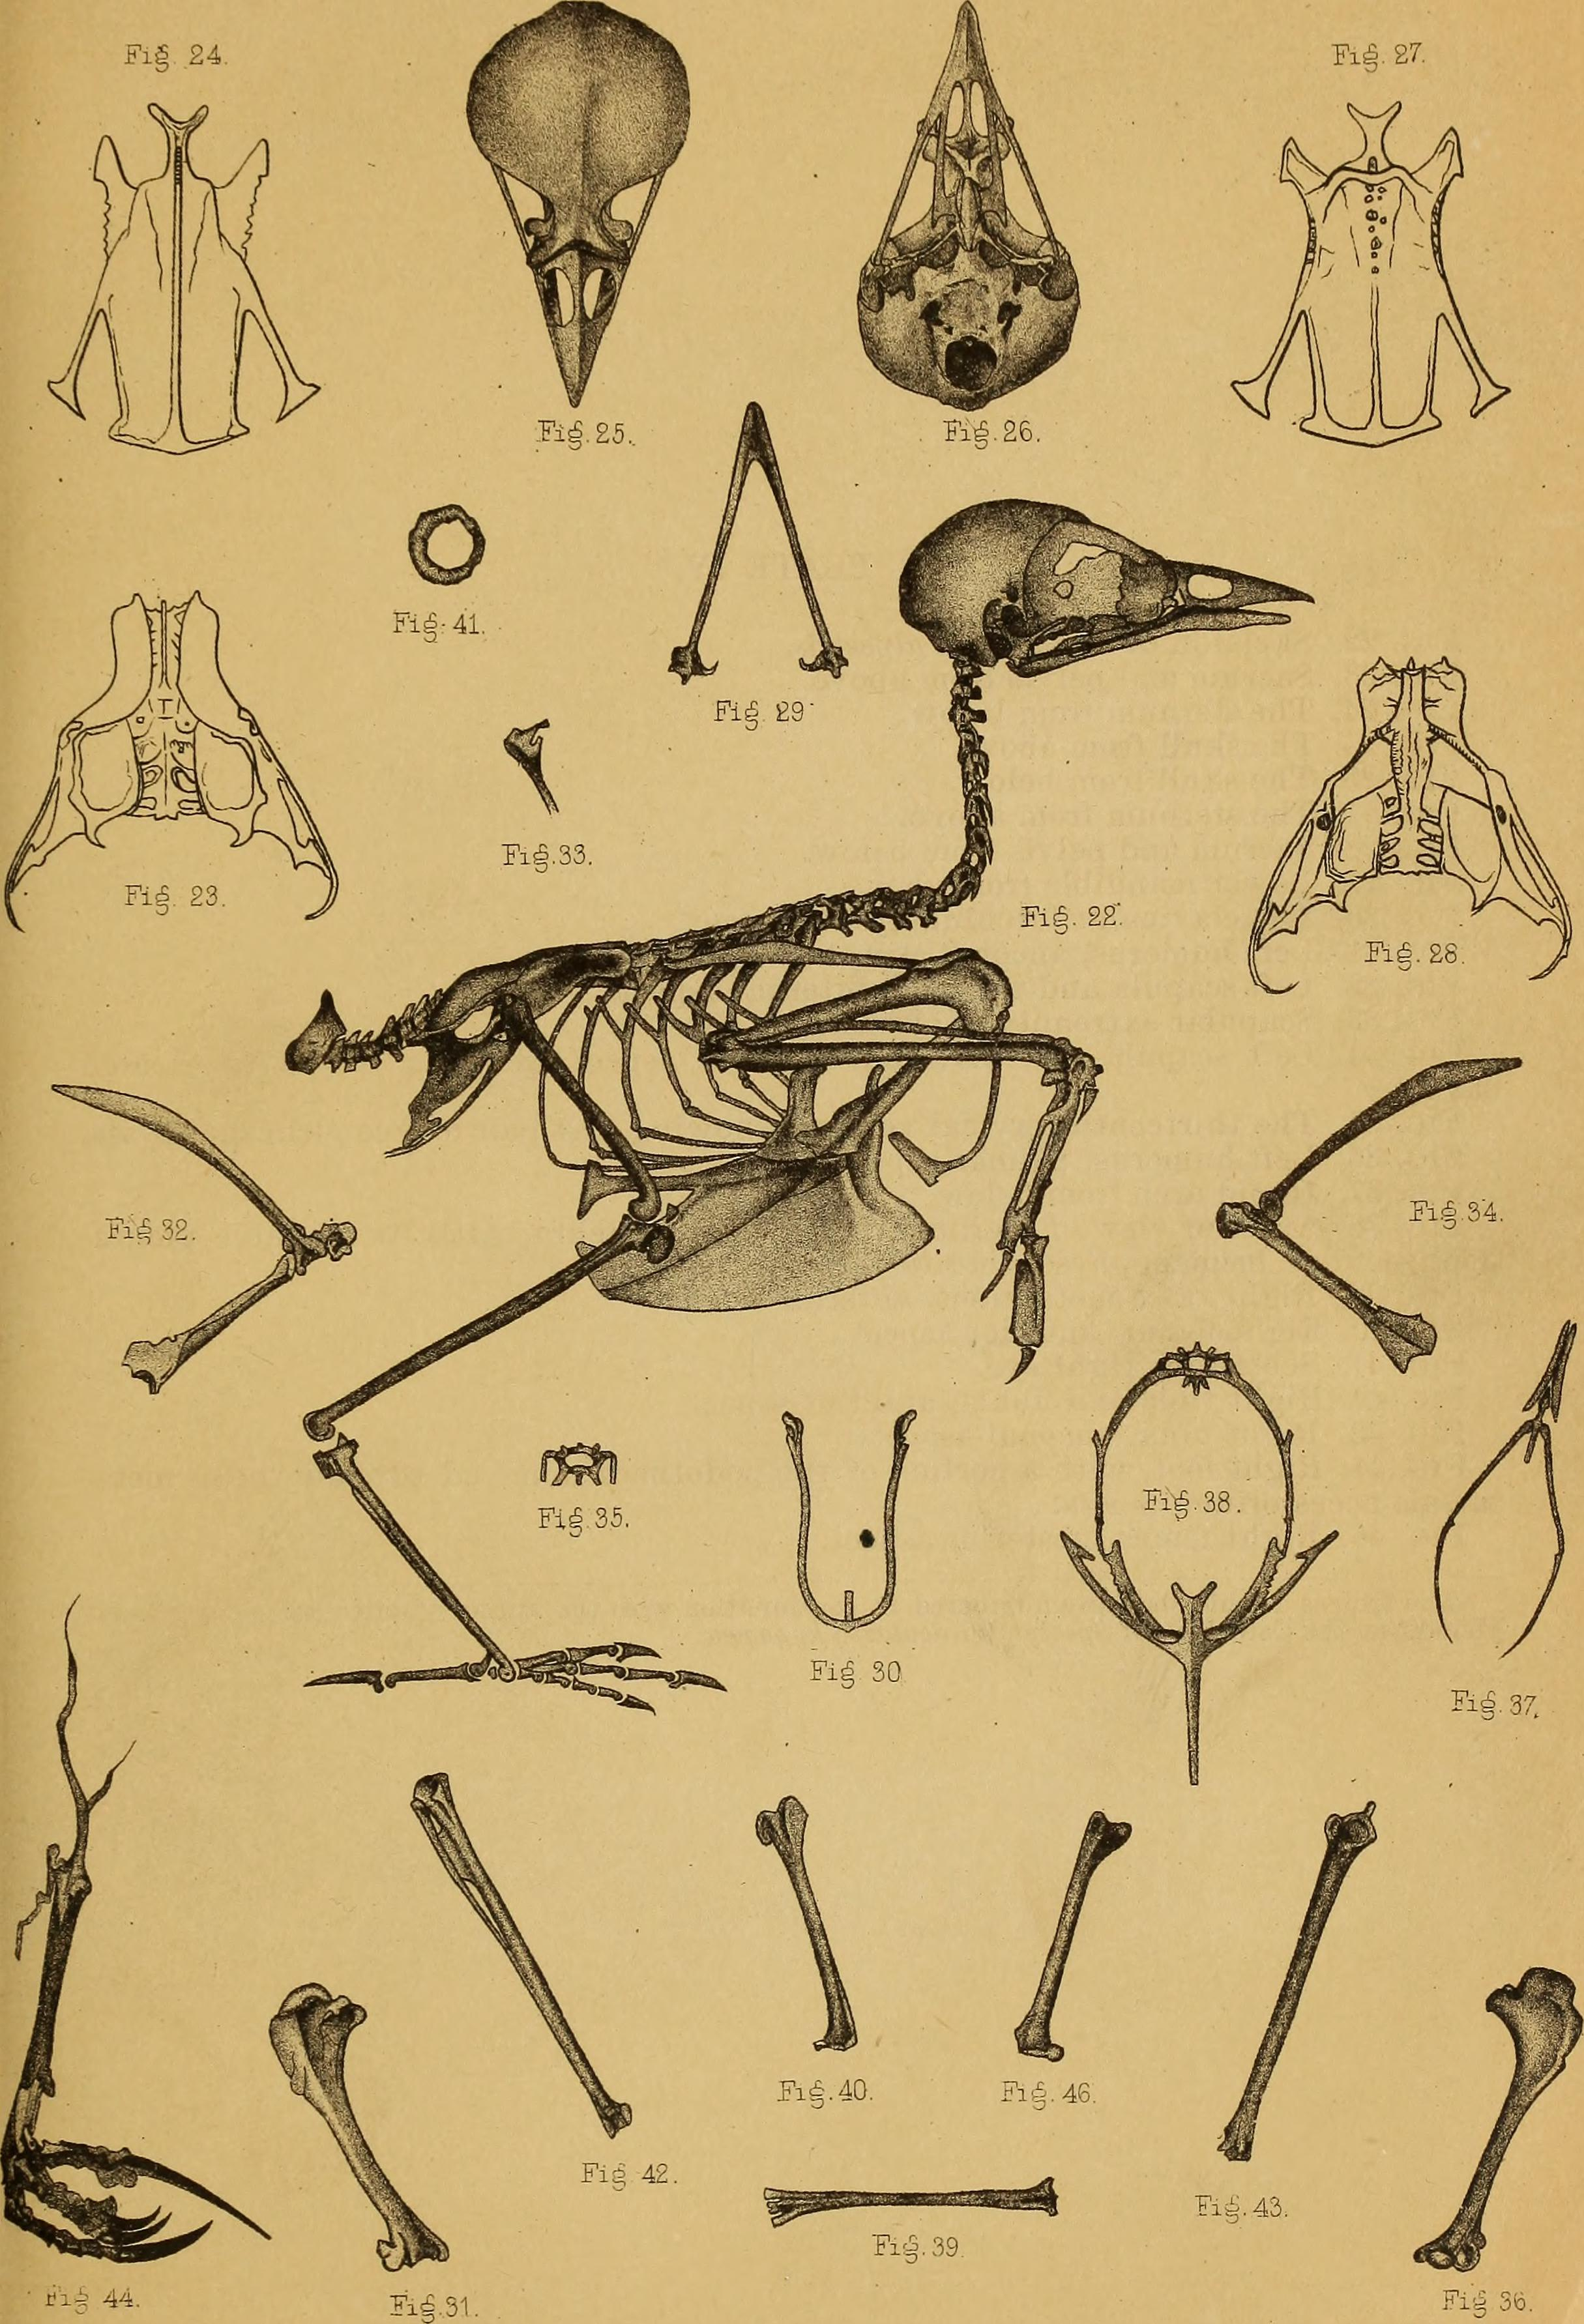 Filecontributions To The Anatomy Of Birds 1882 14568780937g